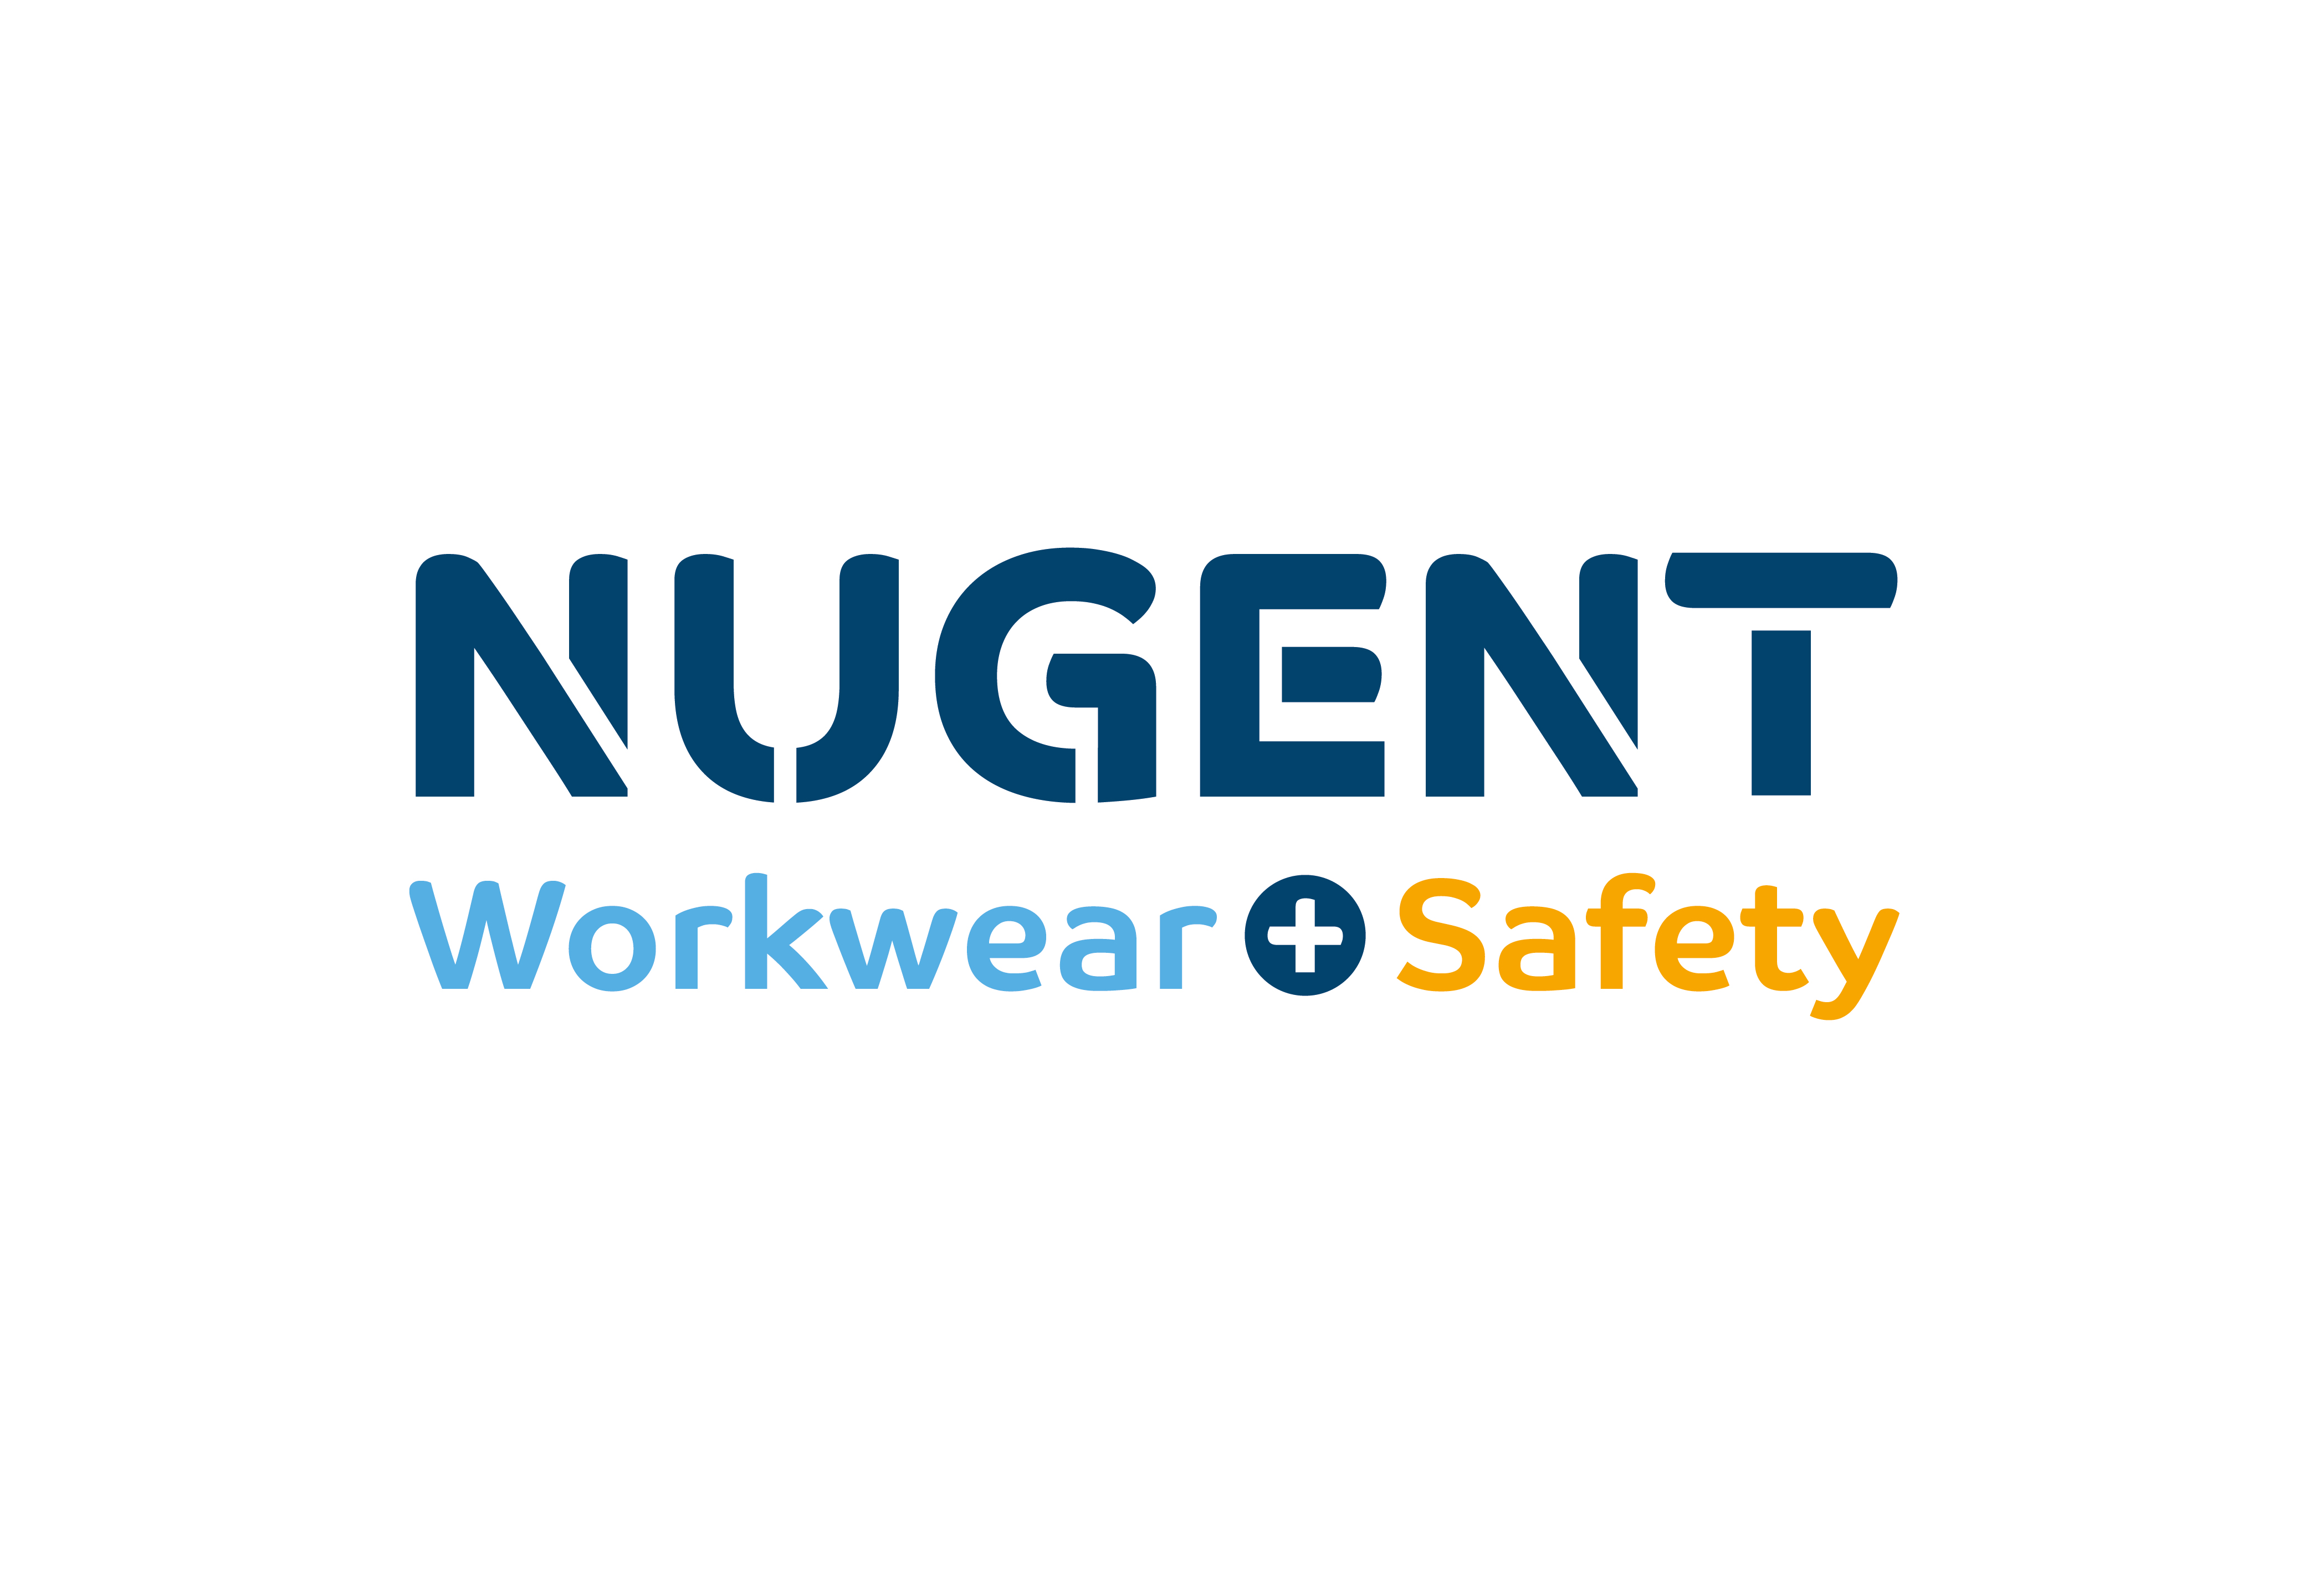 Cover image: Nugent Brand Identity